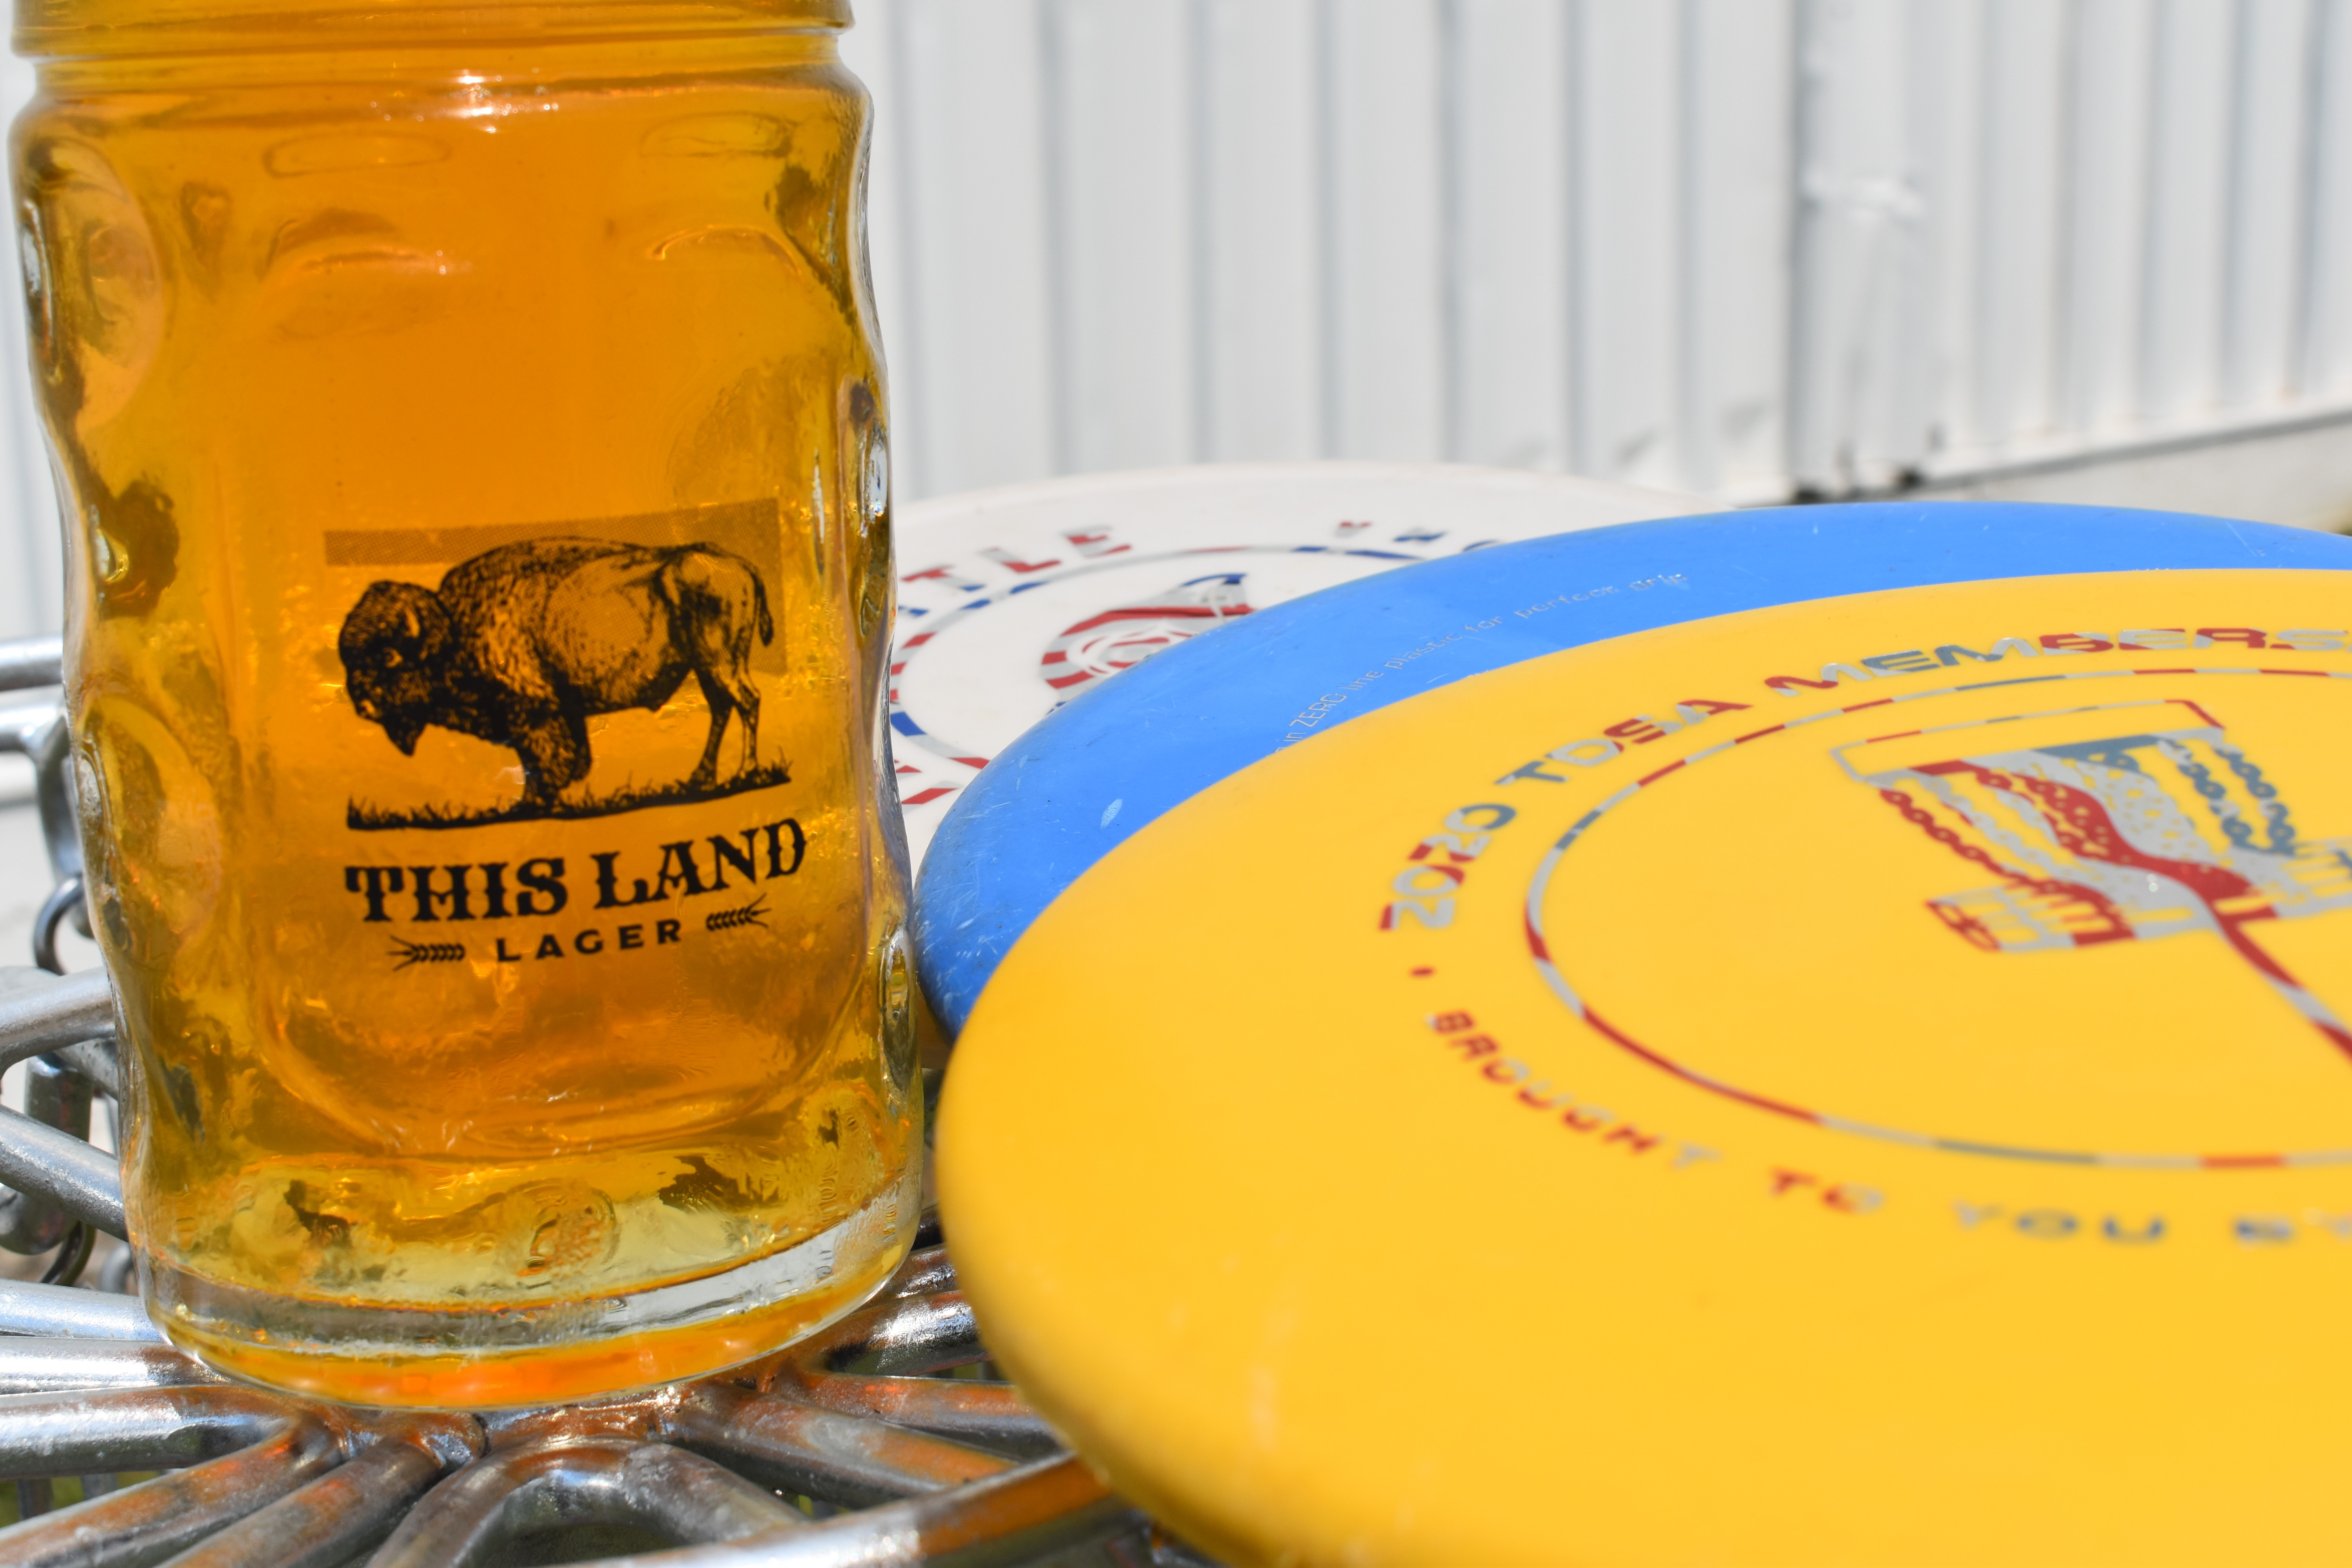 A photo of discs alongside a This Land Lager.